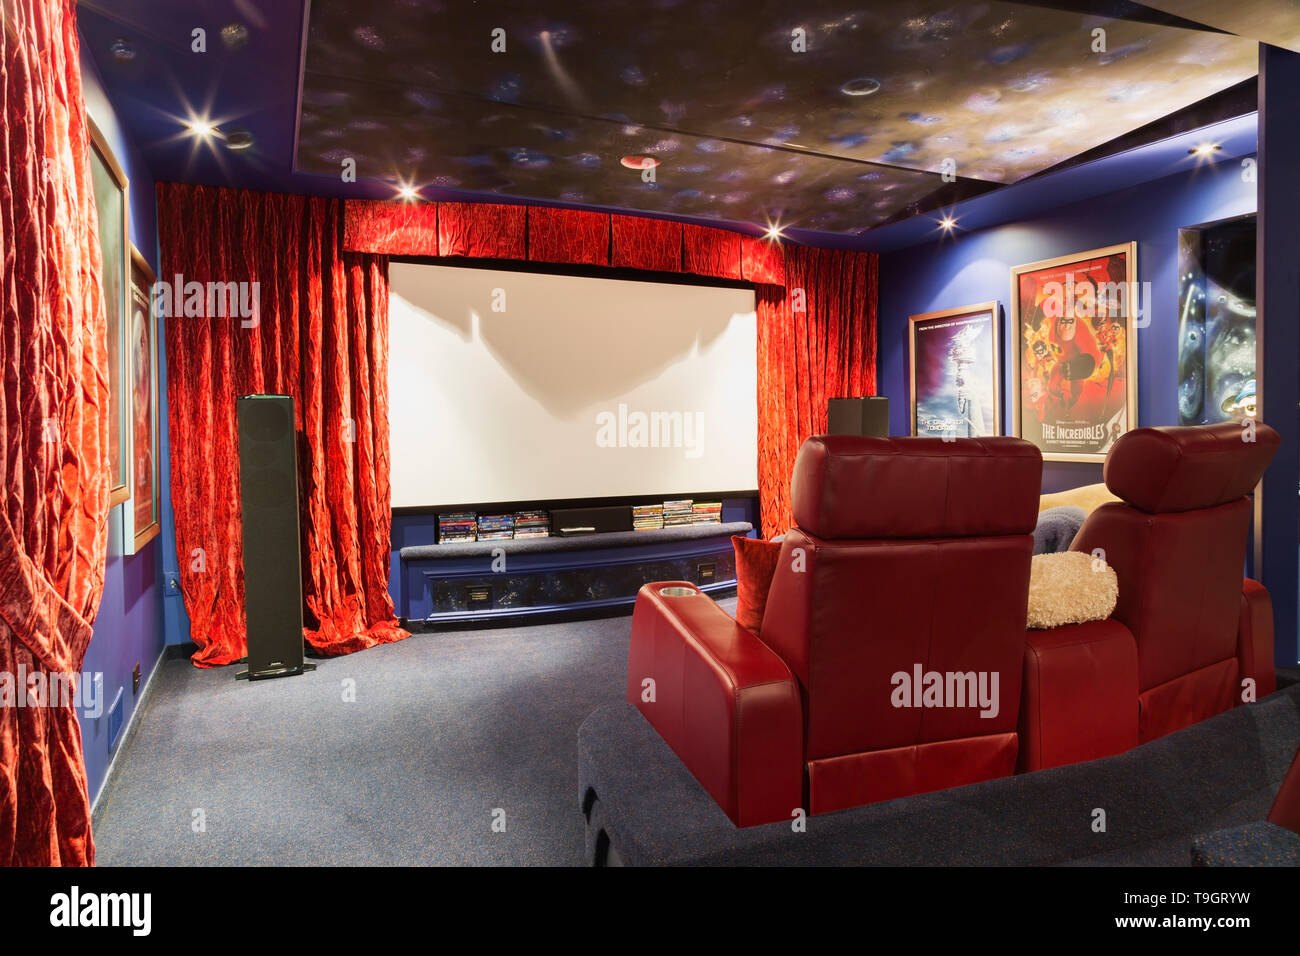 Home Theatre With Red Leather Reclining Seats In Basement